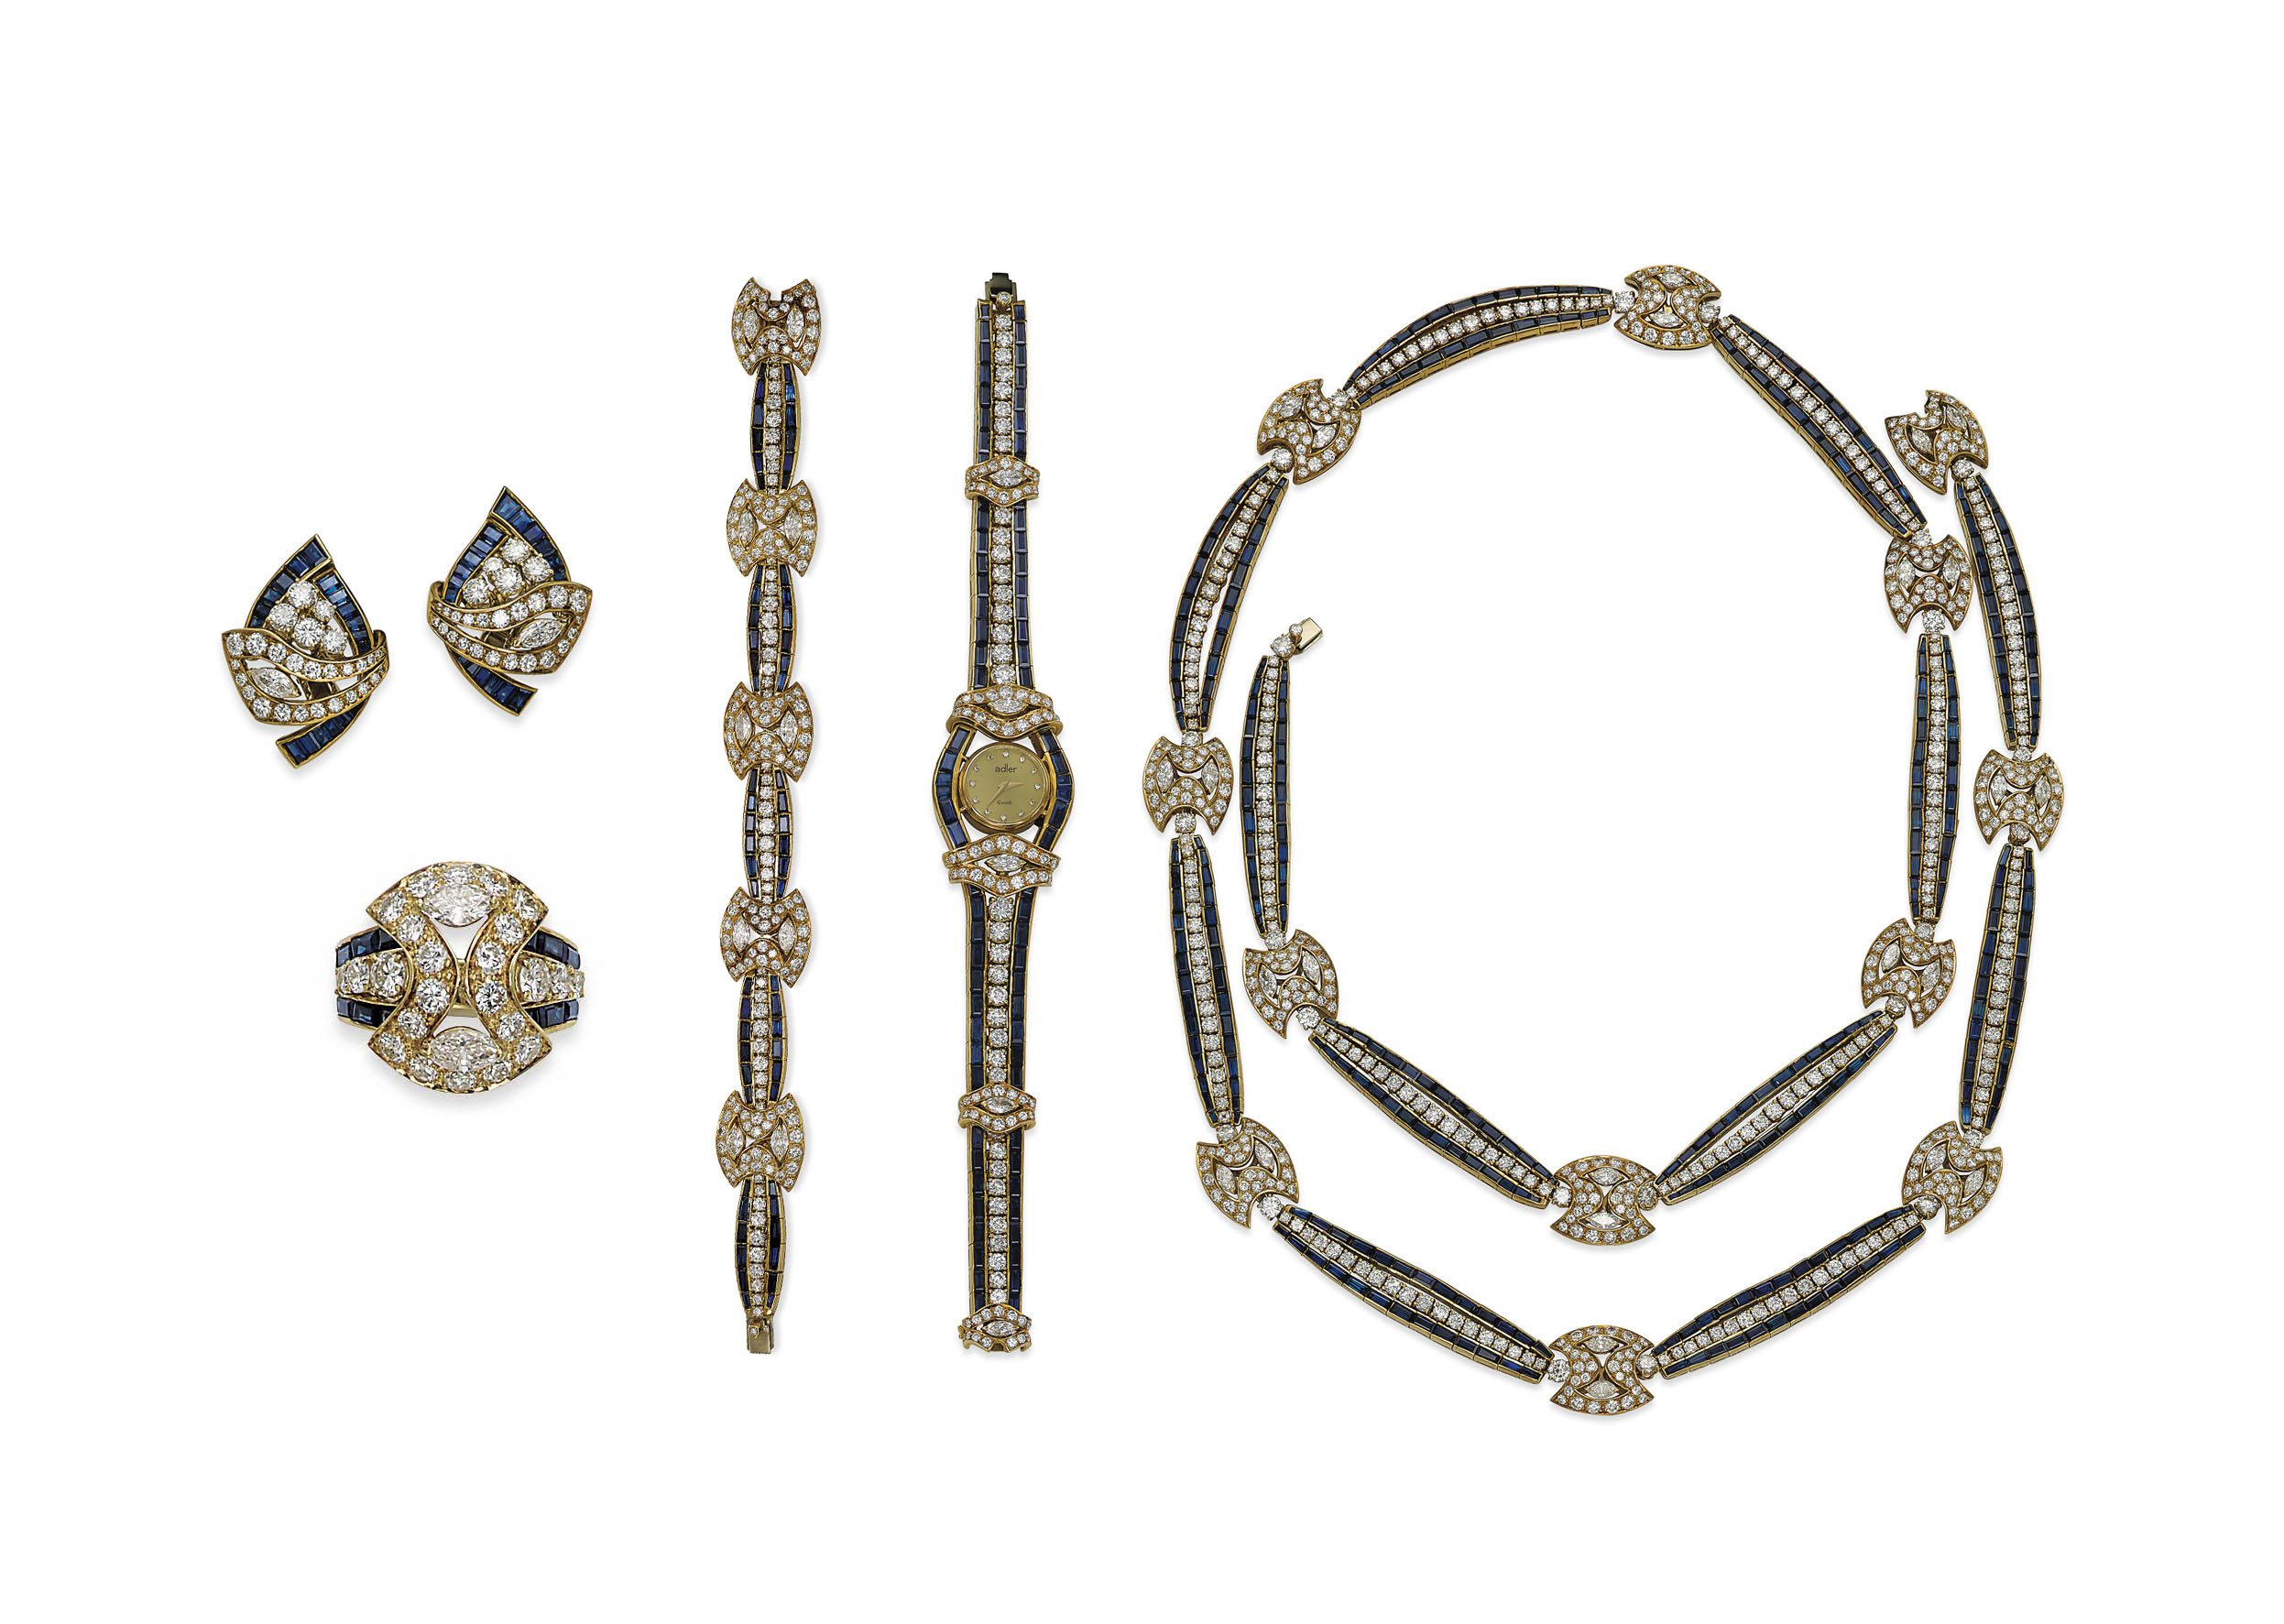 A SUITE OF DIAMOND AND SAPPHIRE JEWELLERY, BY ADLER